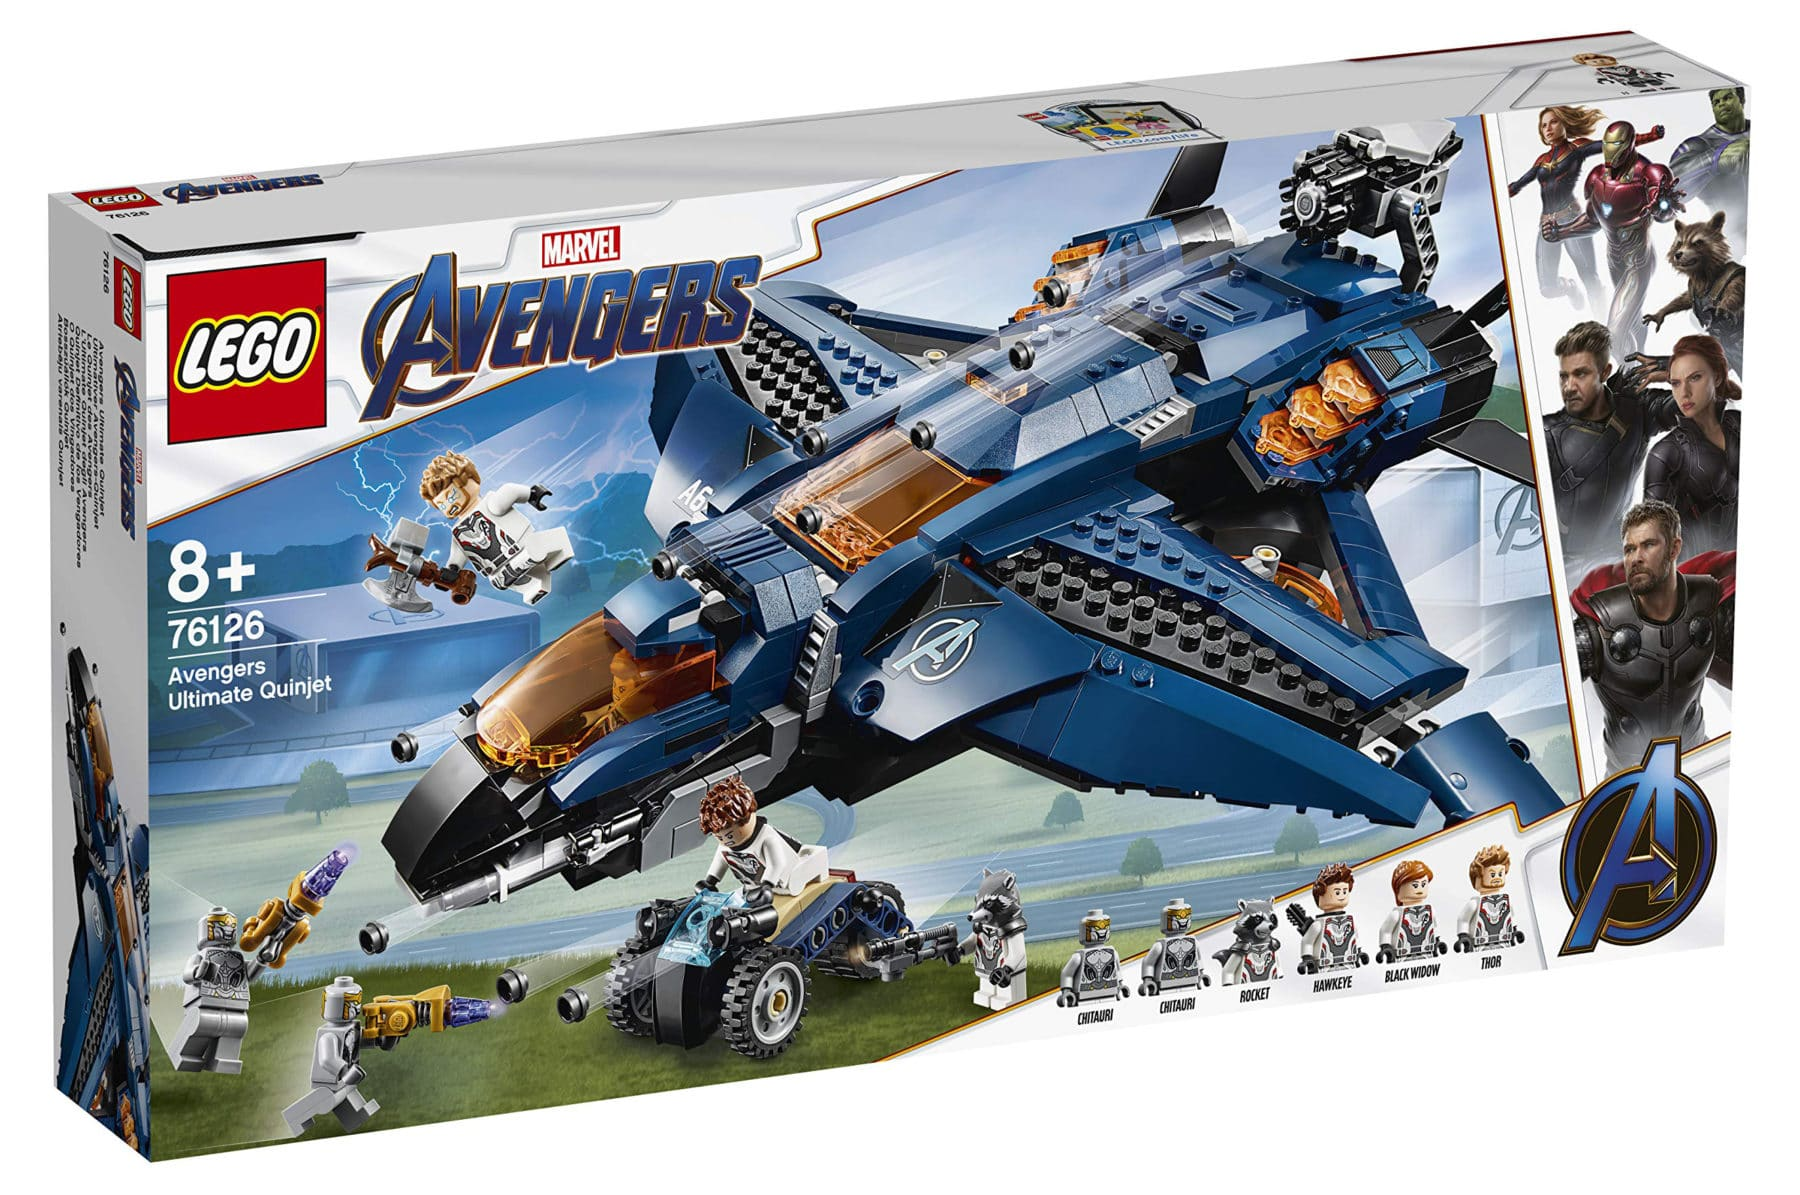 LEGO 76126 Avengers Ultimate Quinjet